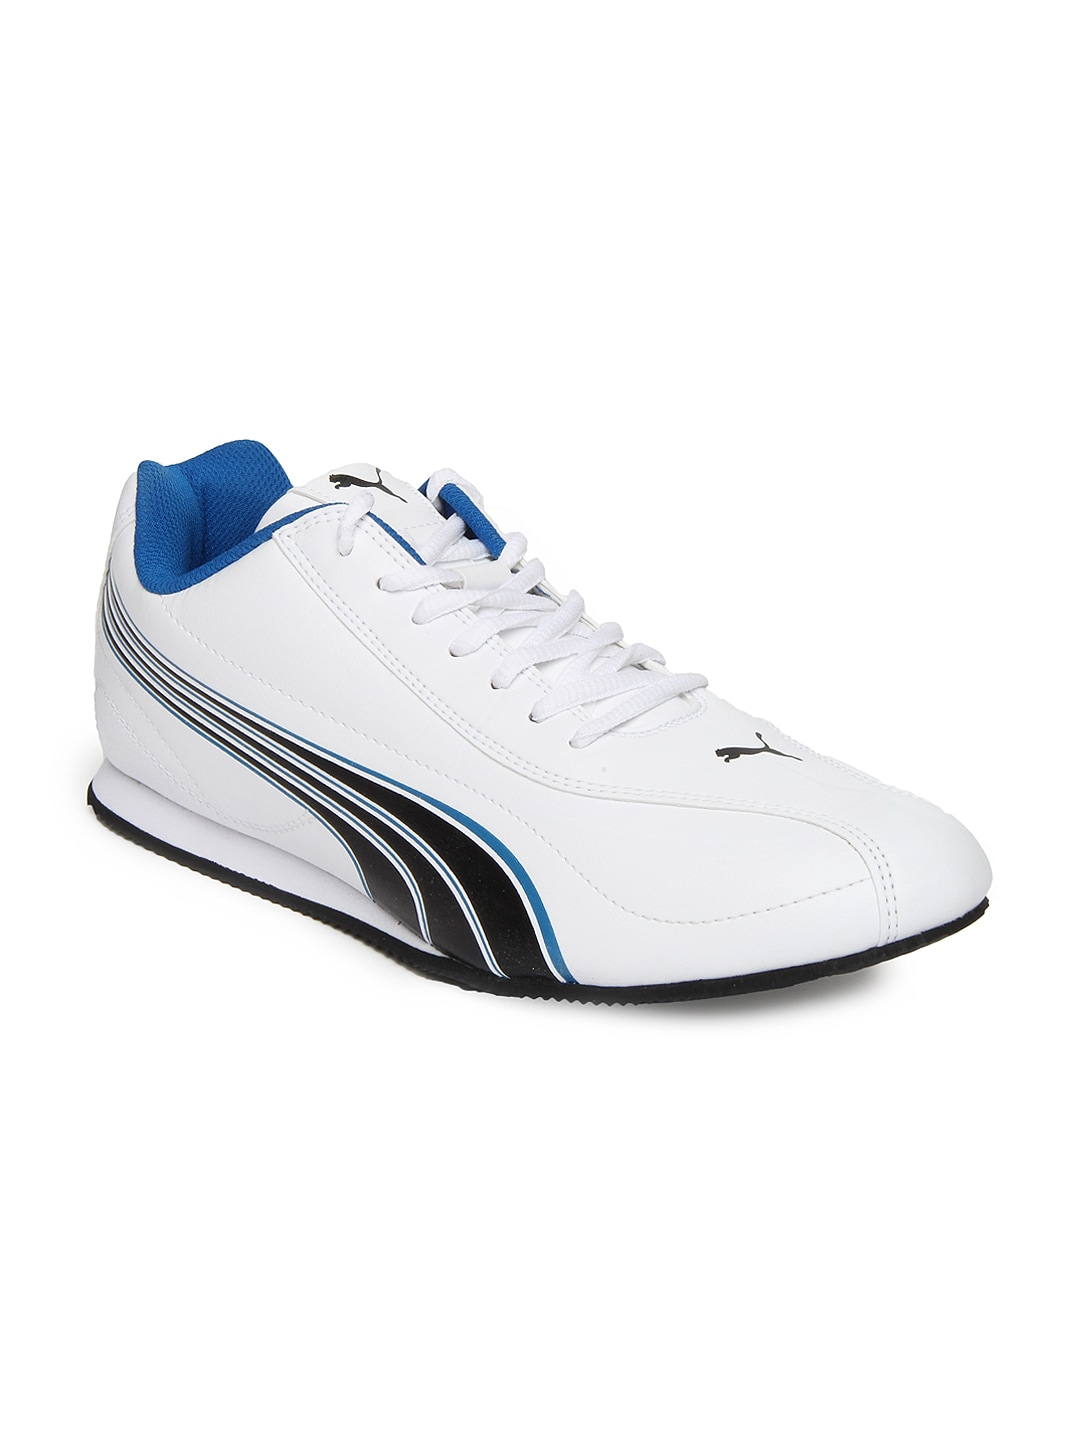 Puma White Shoes Myntra